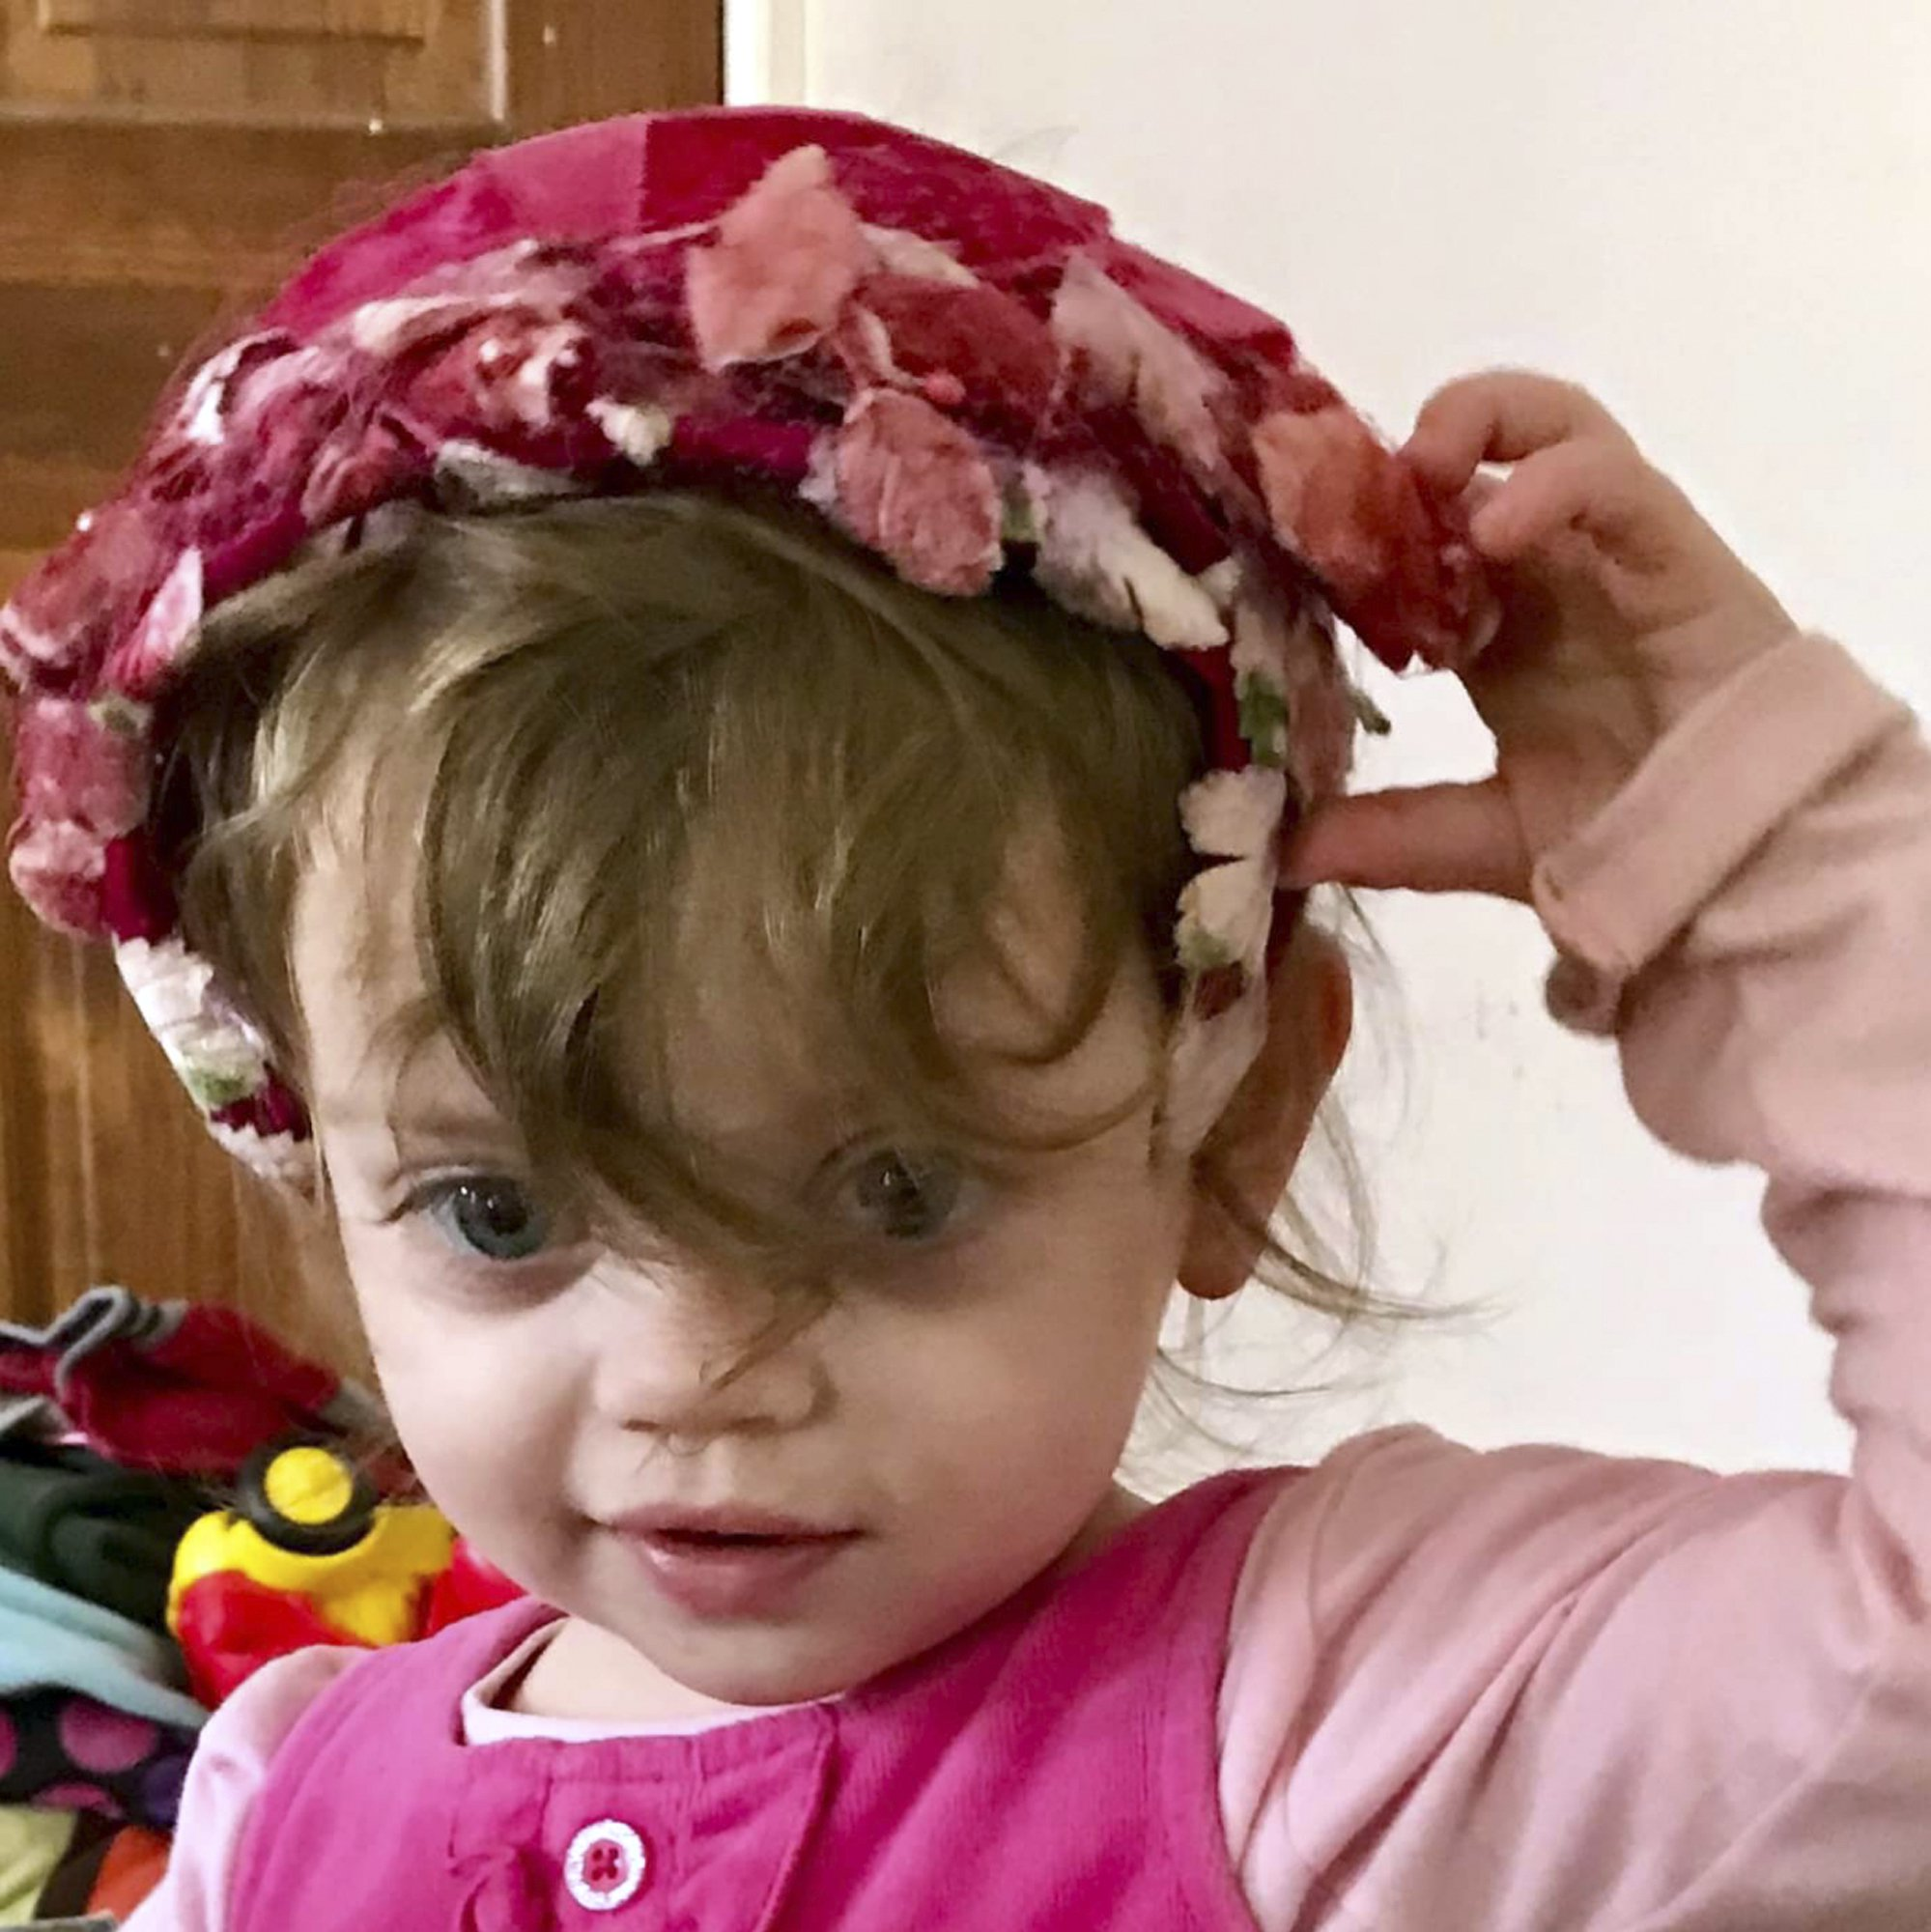 This undated family photo provided by Lindsay Van Schoick shows his granddaughter Sofia Van Schoick, who was found dead outside her house in sub-zero weather early Monday, Jan. 14, 2019, in Newport, N.H. She was 2-years-old. (Courtesy of Lindsay Van Schoick via AP)